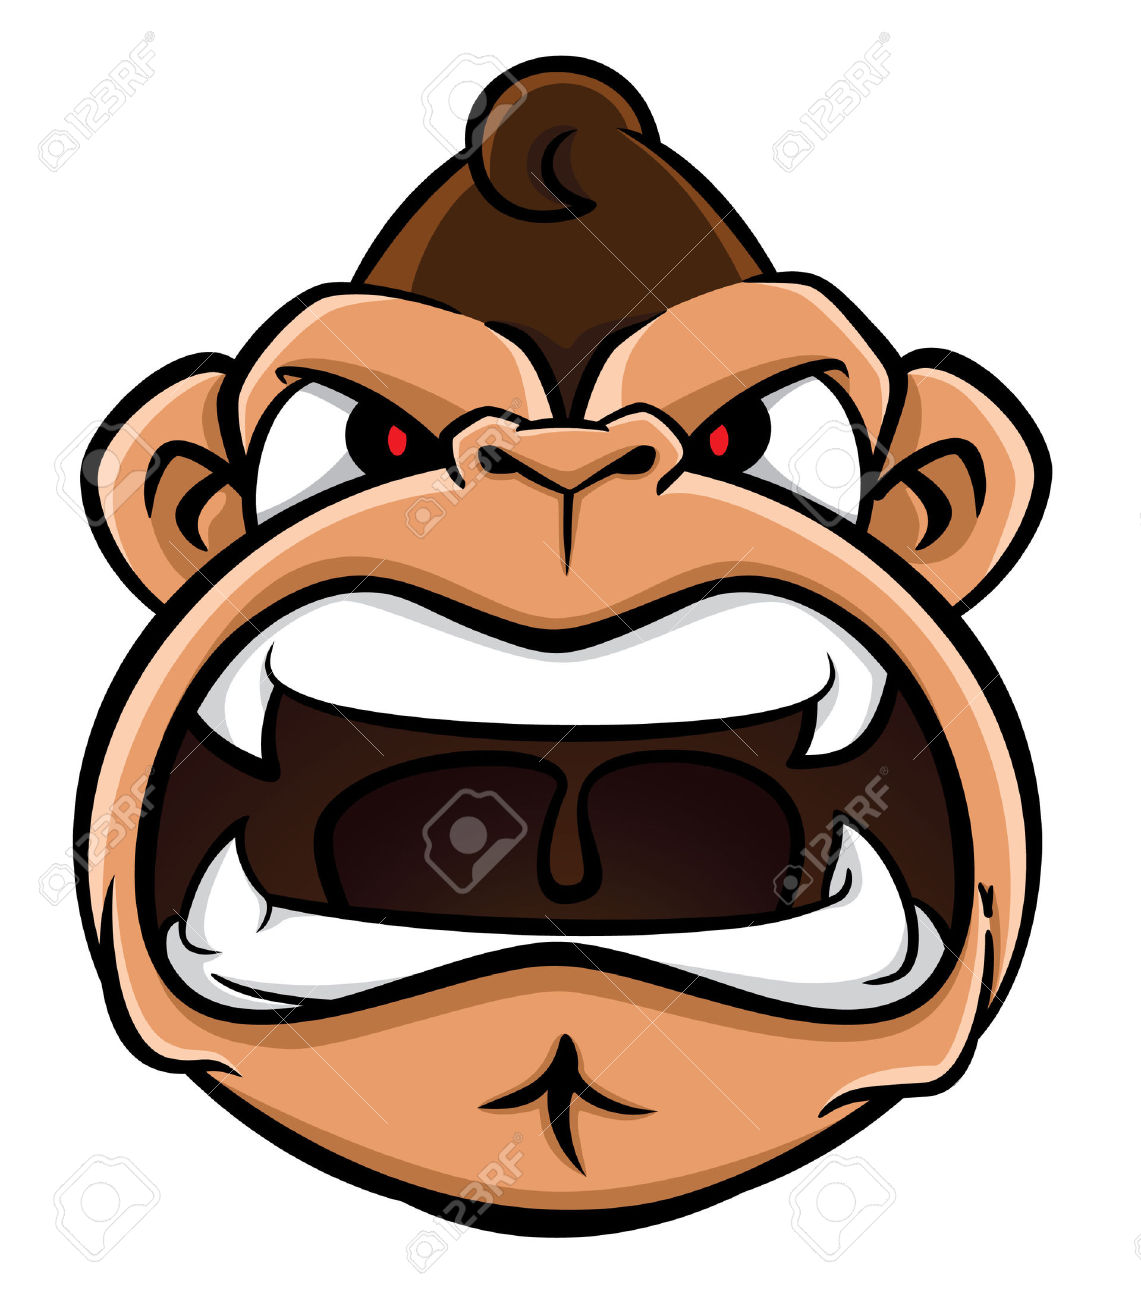 11102 Angry free clipart.